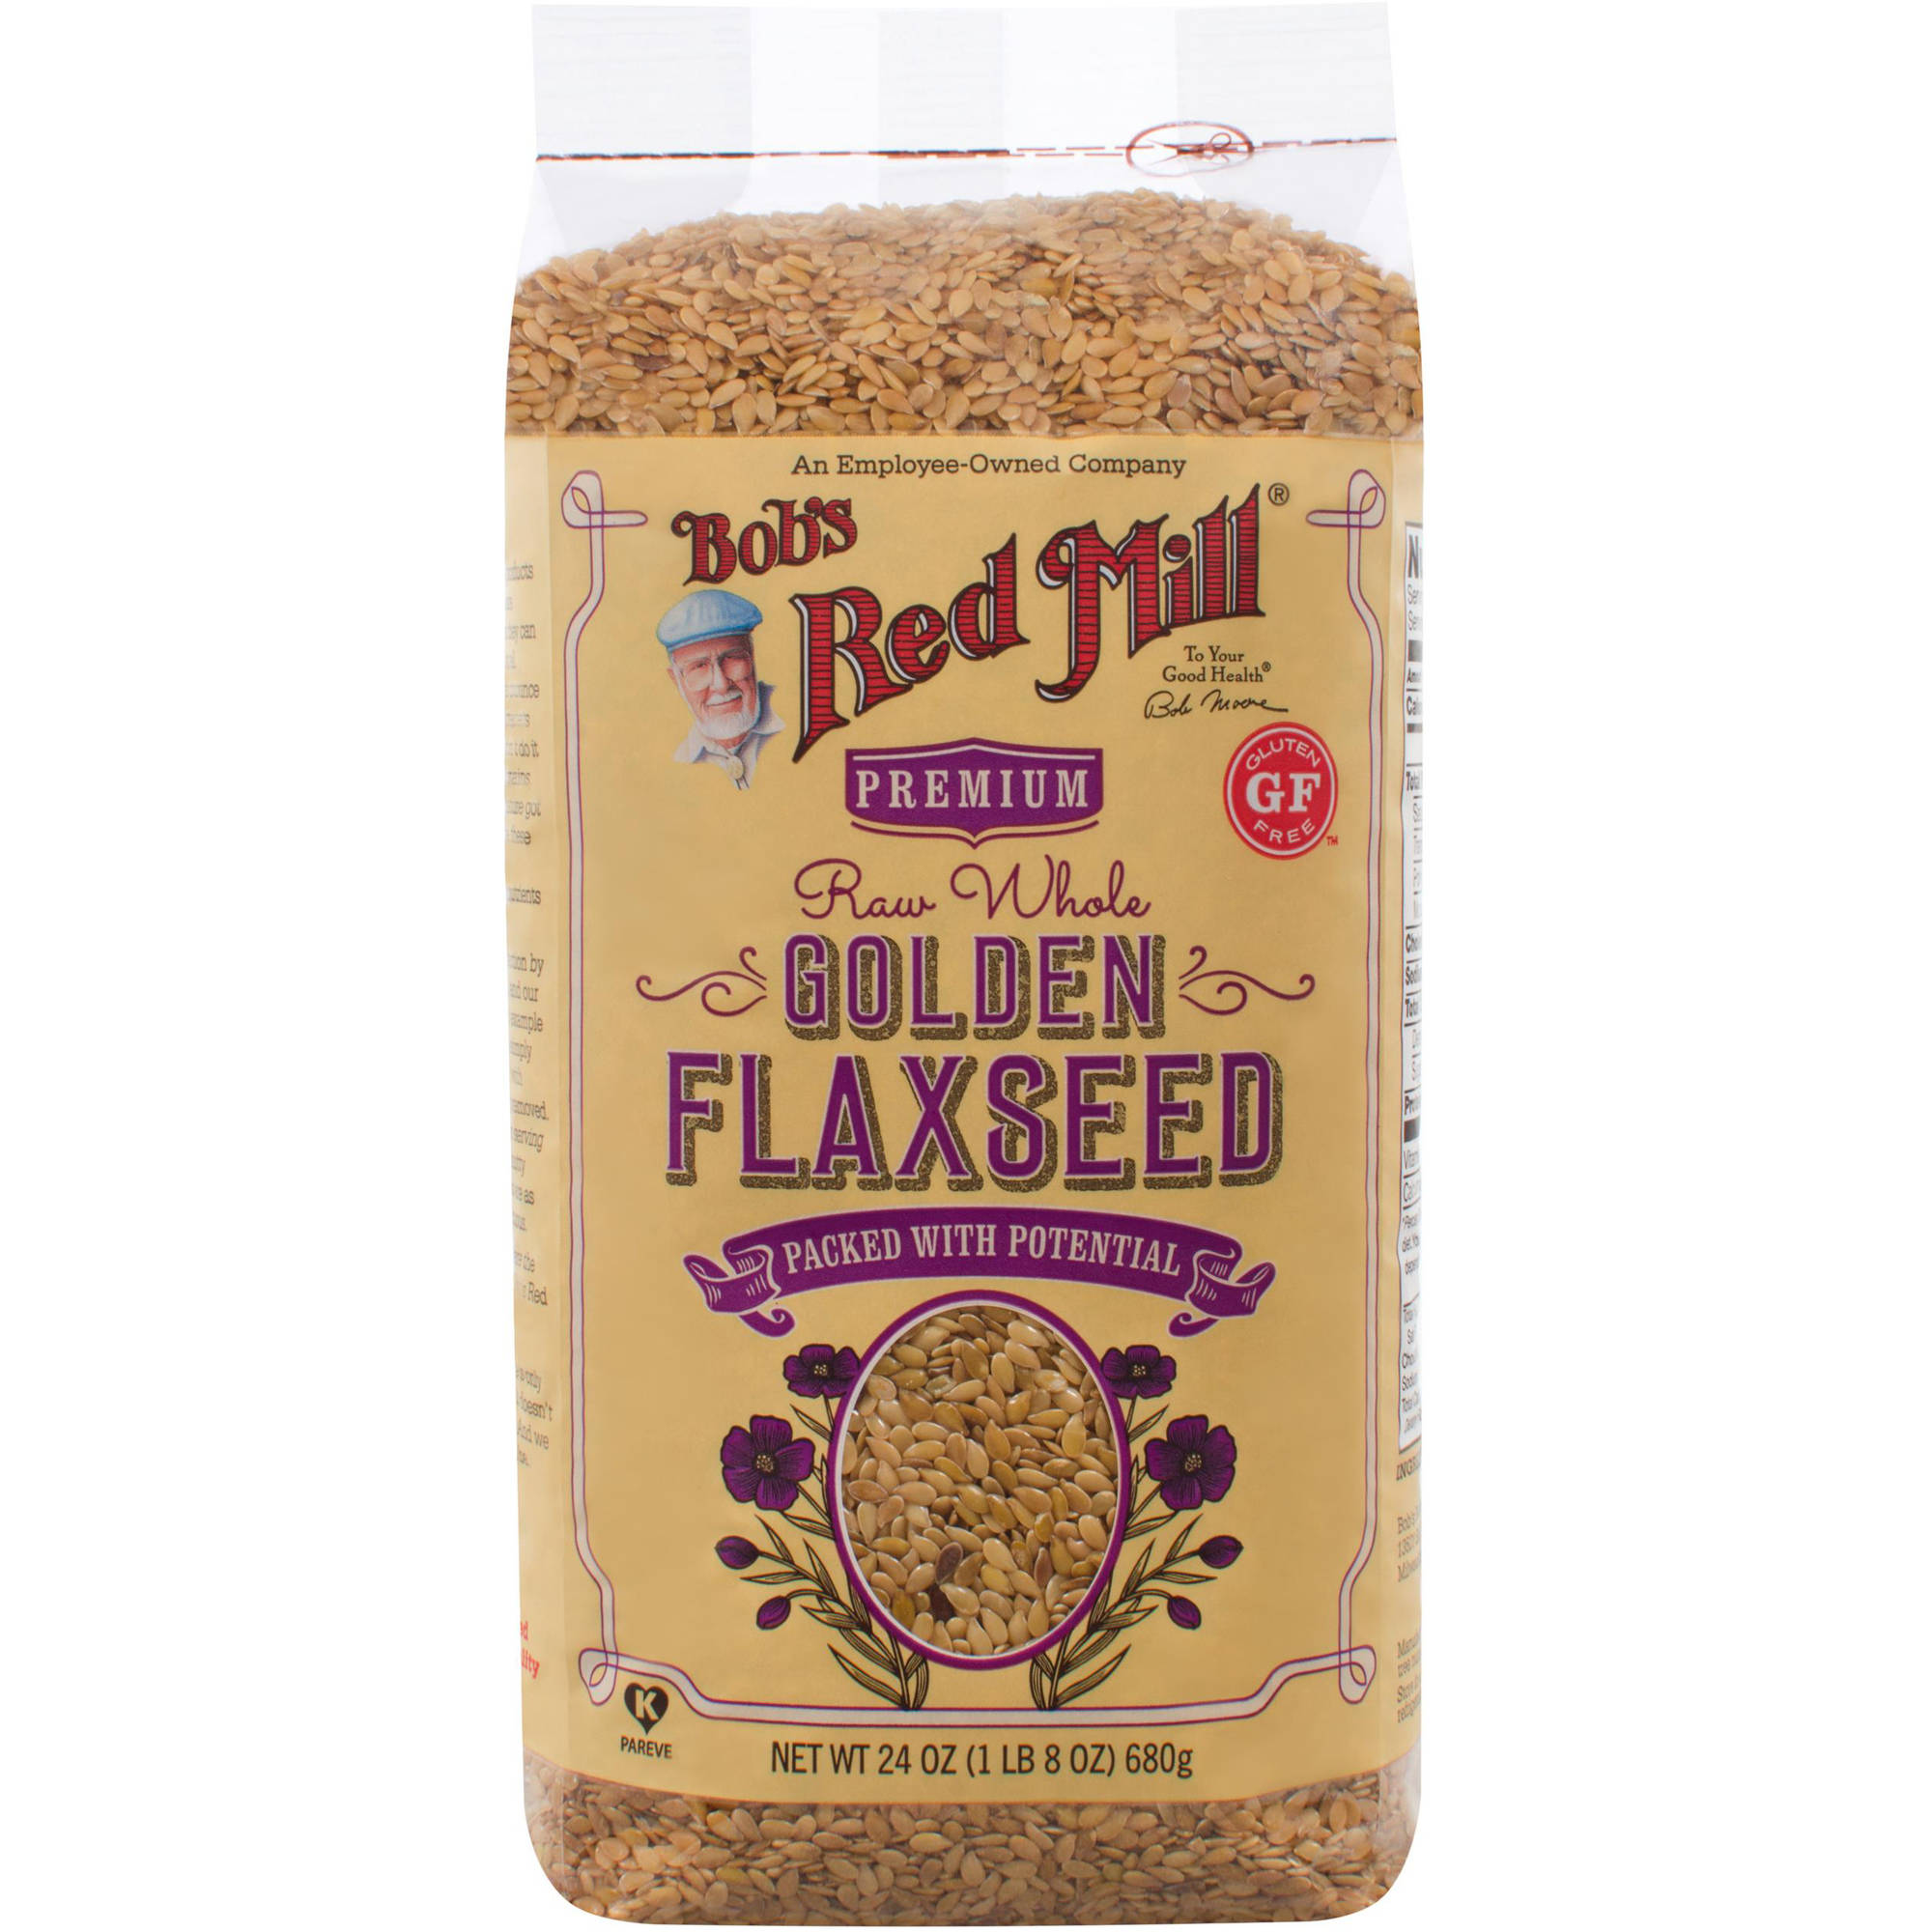 Bob's Red Mill Golden Flaxseed, 24 oz (Pack of 4)